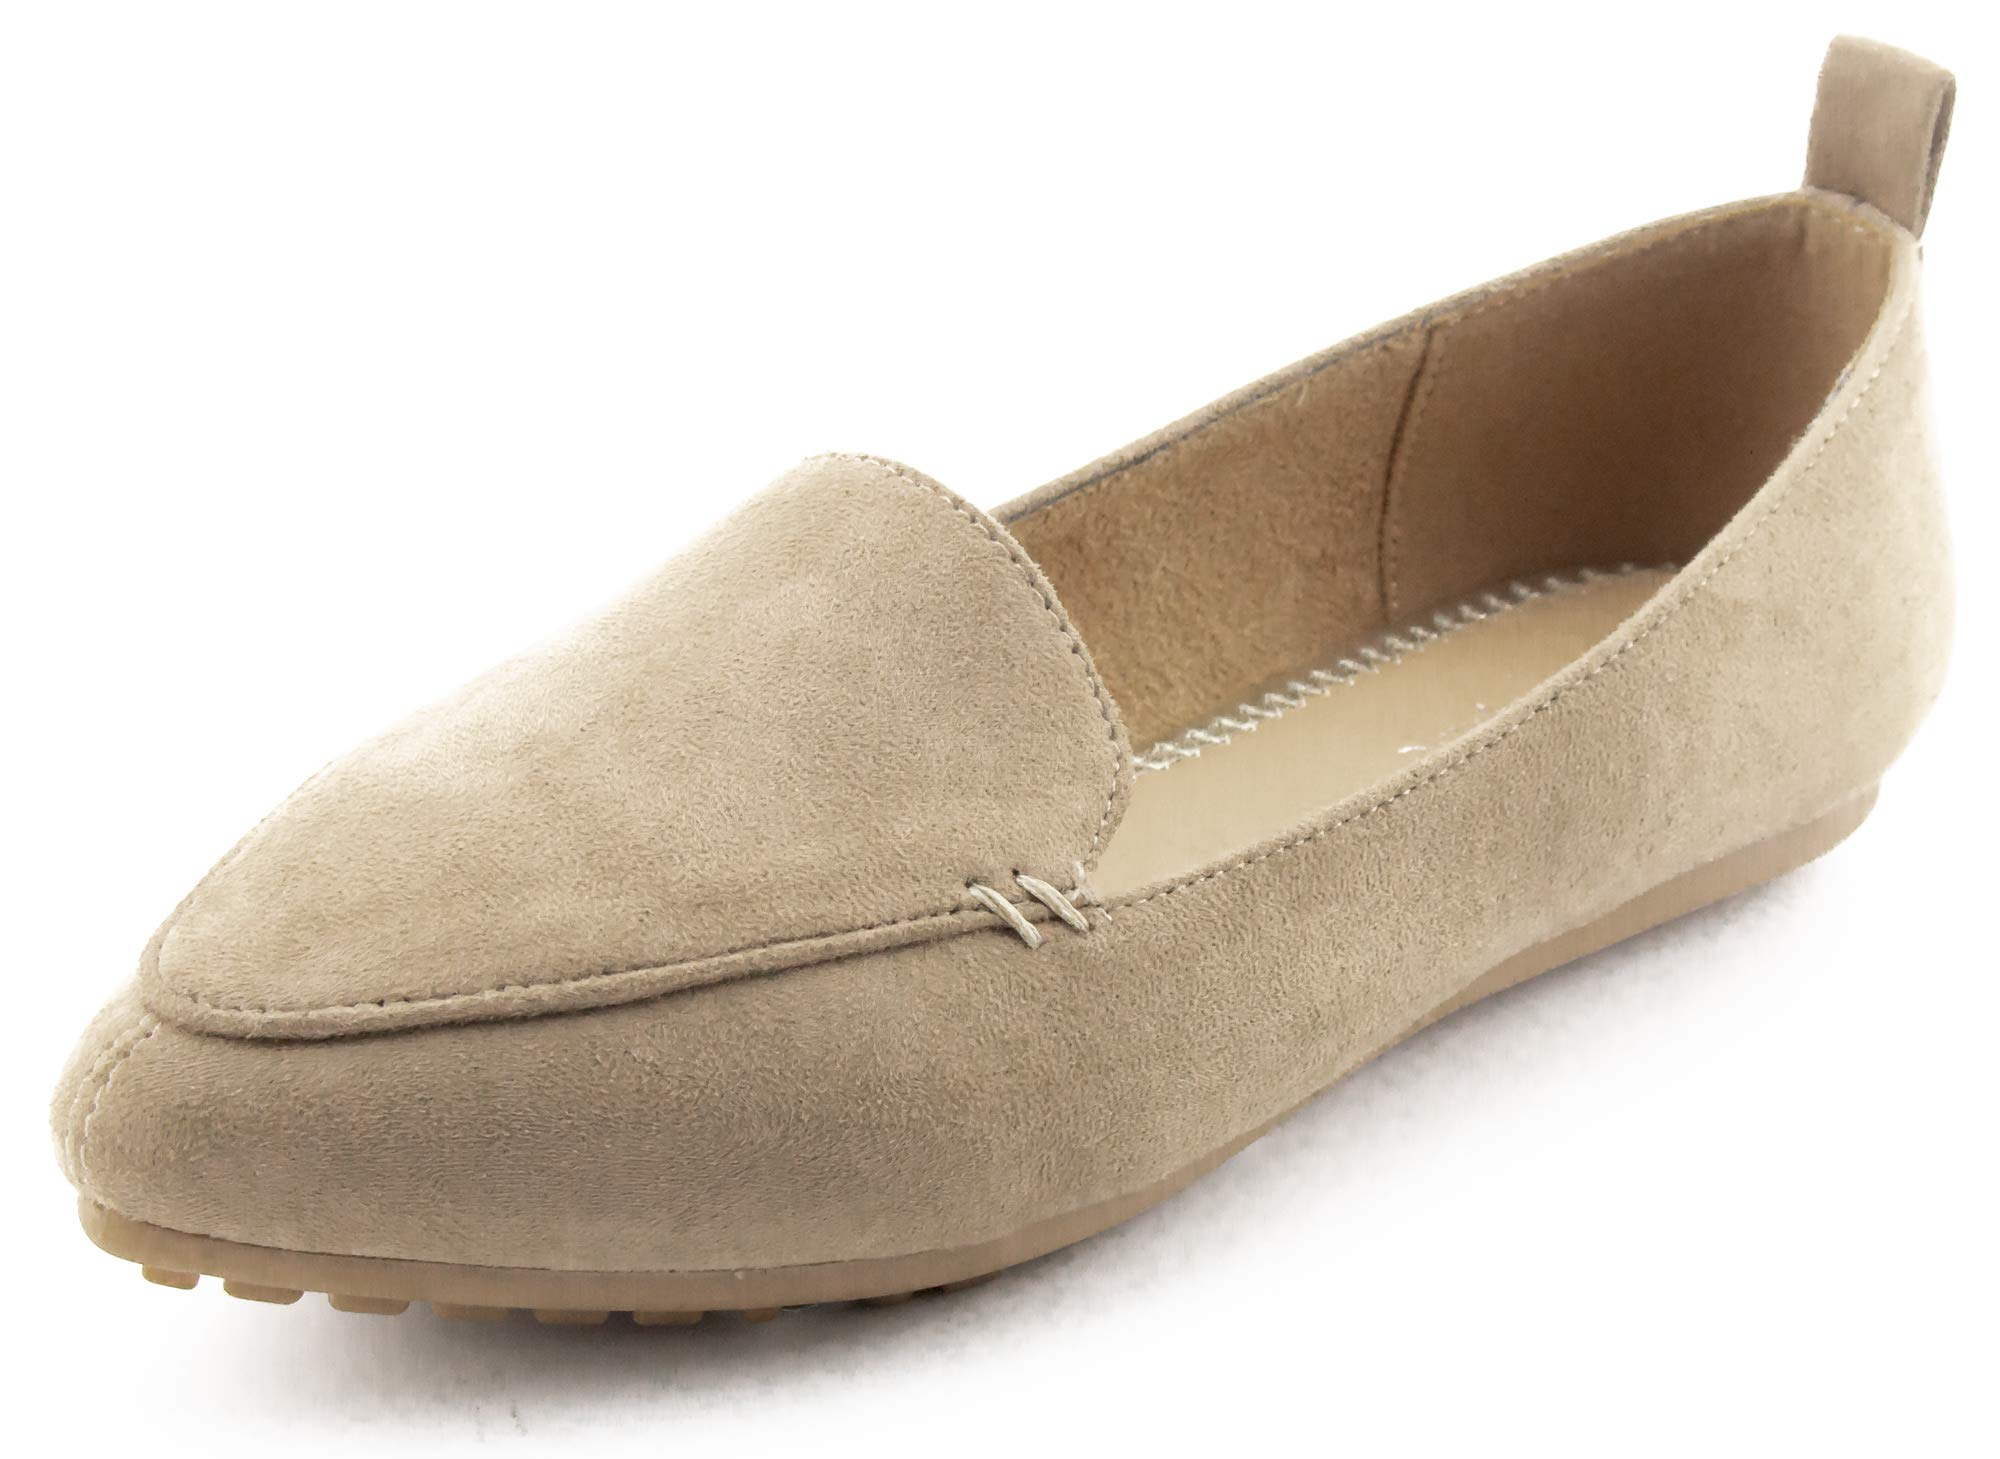 7e9f71c8239 CALICO KIKI Pointed Toe Flats Loafer - Comfort Slip on Faux Suede – Casual  Dress Flat Cushioned Padded (8.5 US TAUP SU)